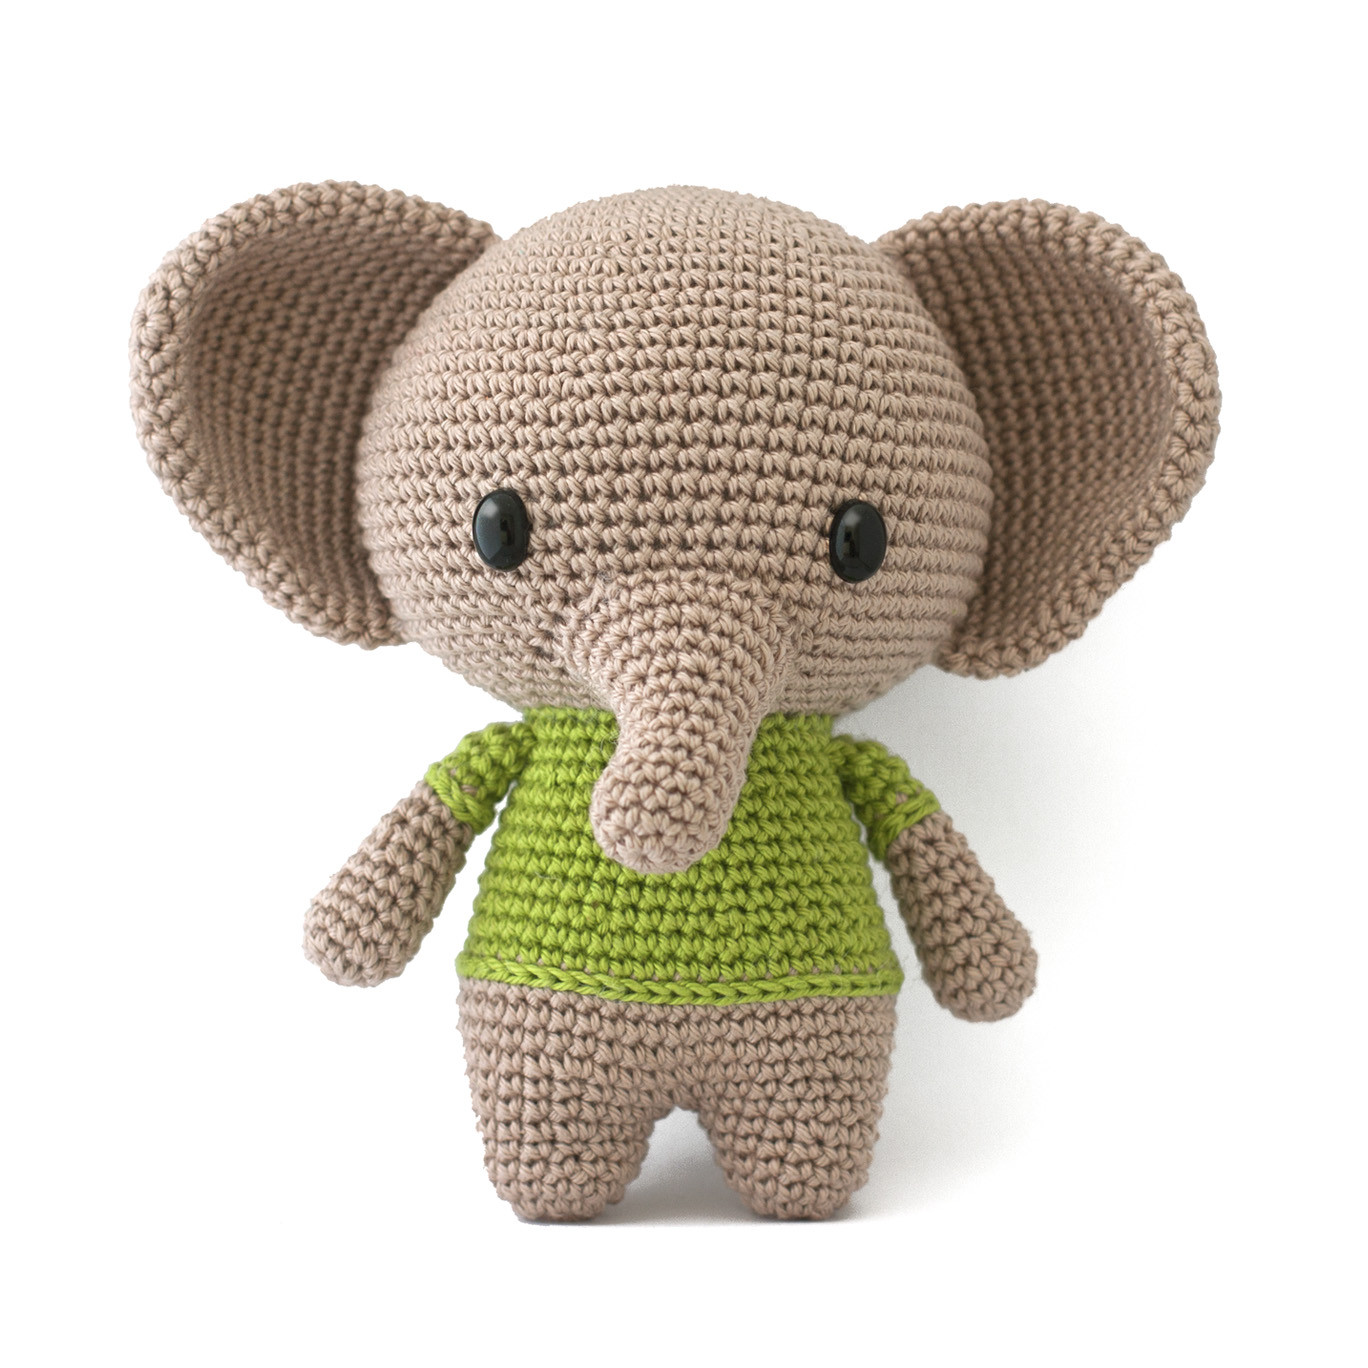 Crochet Elephant New toy Patterns by Diy Fluffies Of Amazing 49 Models Crochet Elephant